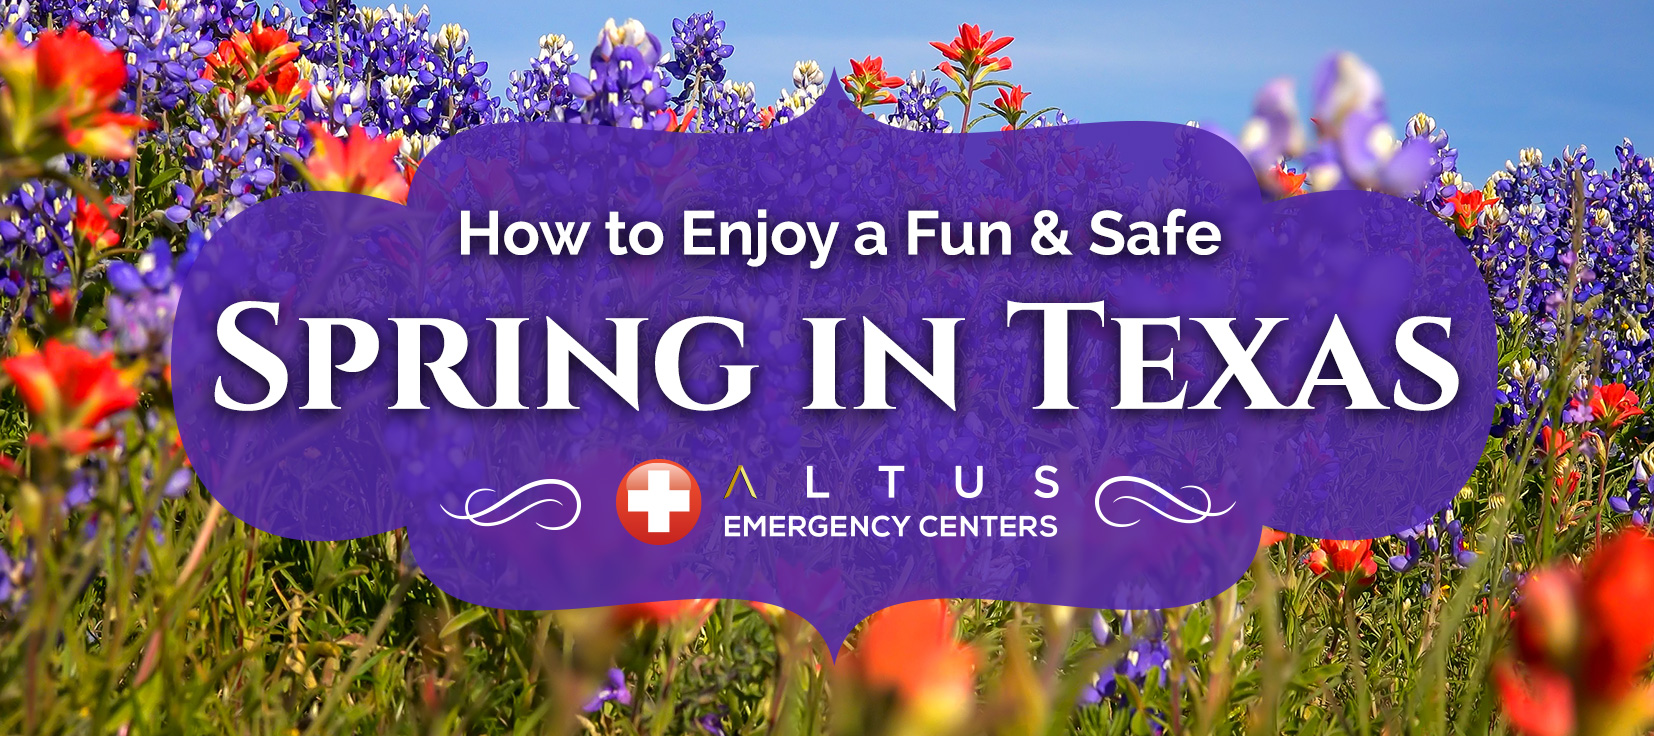 tips to enjoy a safe and fun spring in texas altus emergency